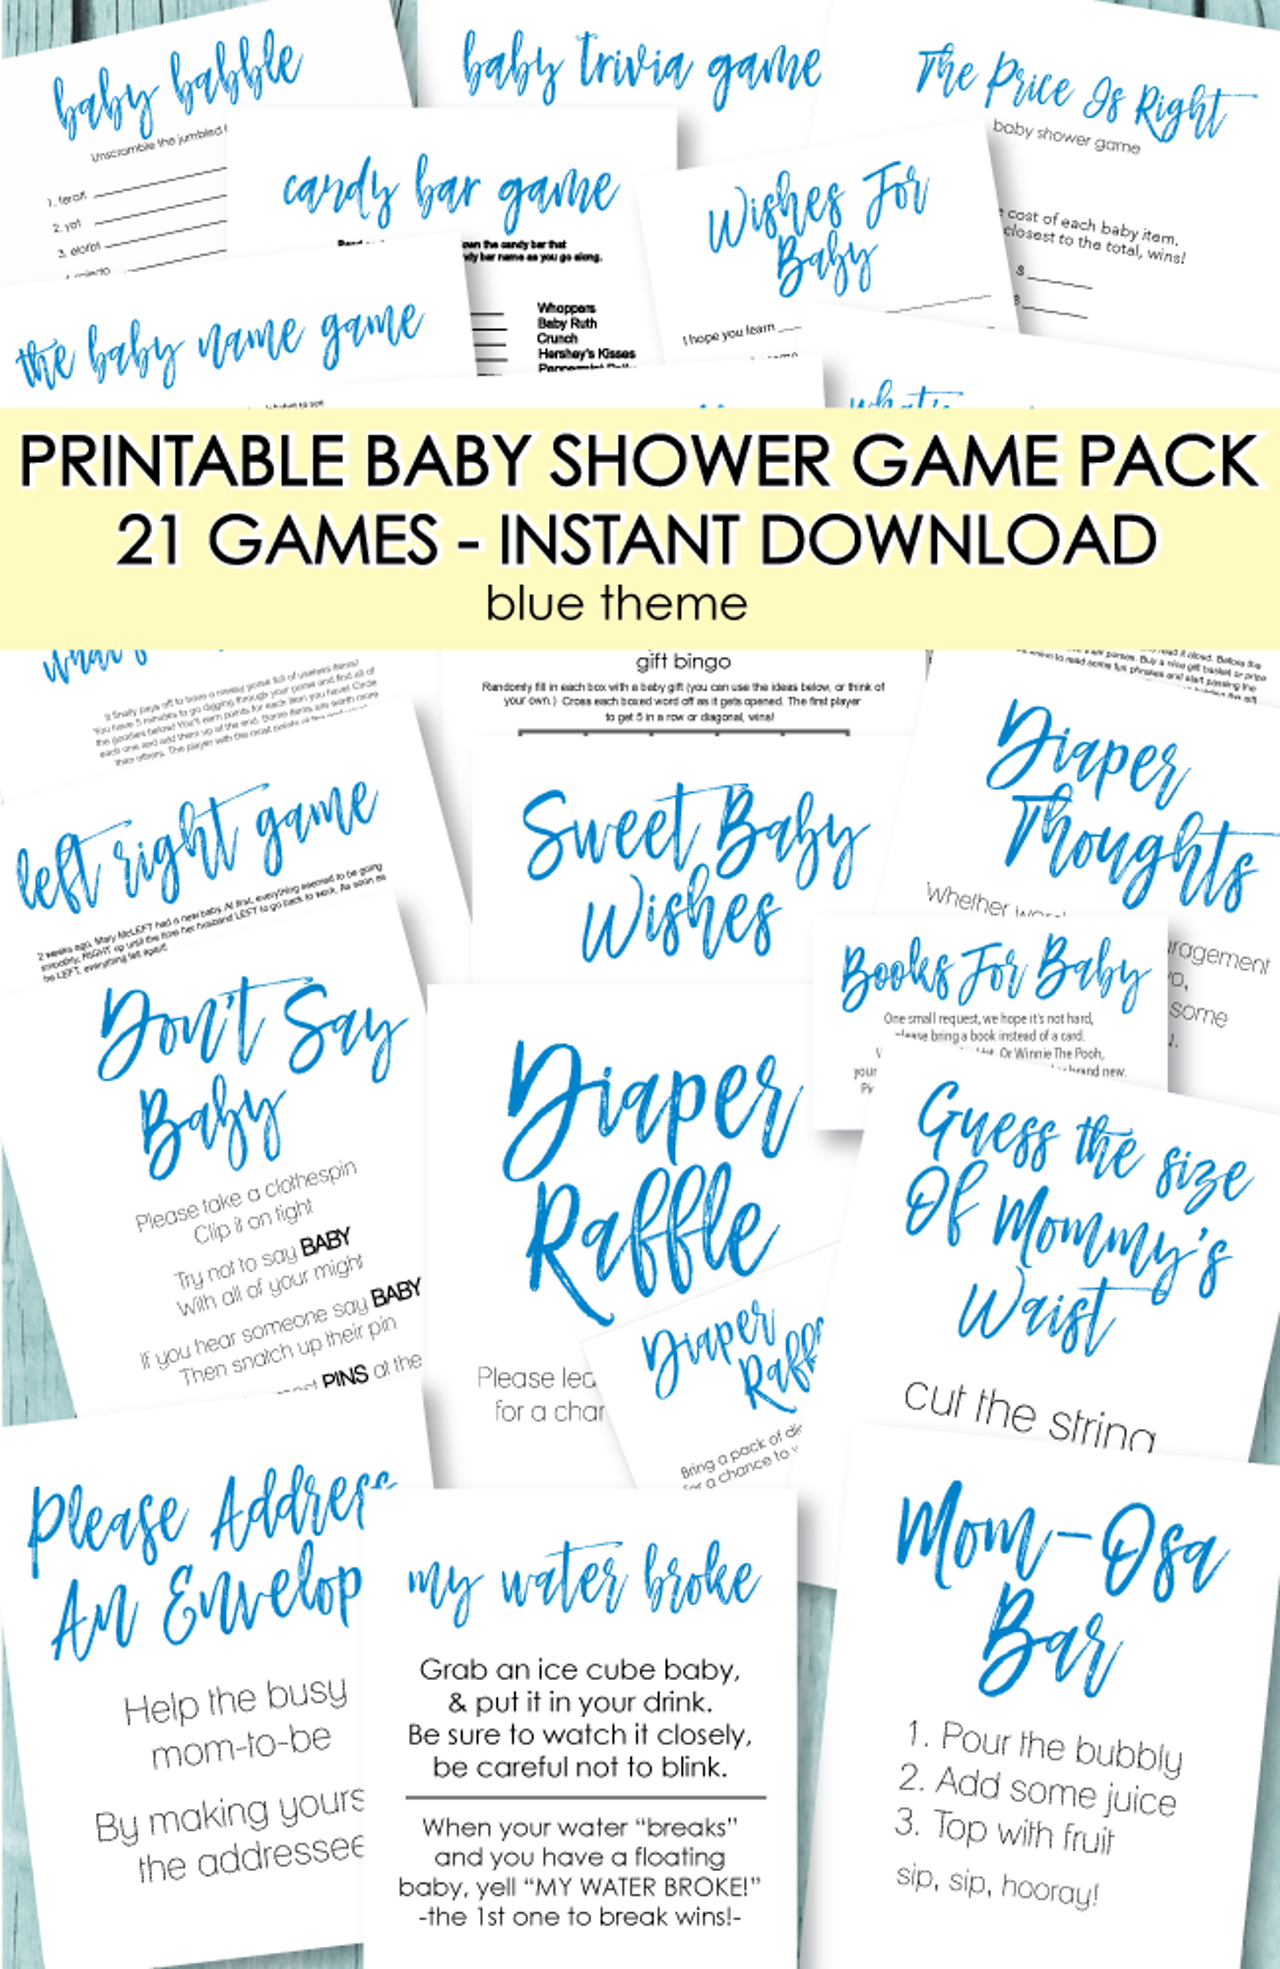 21 Printable Baby Shower Games - Super Game Pack - Blue